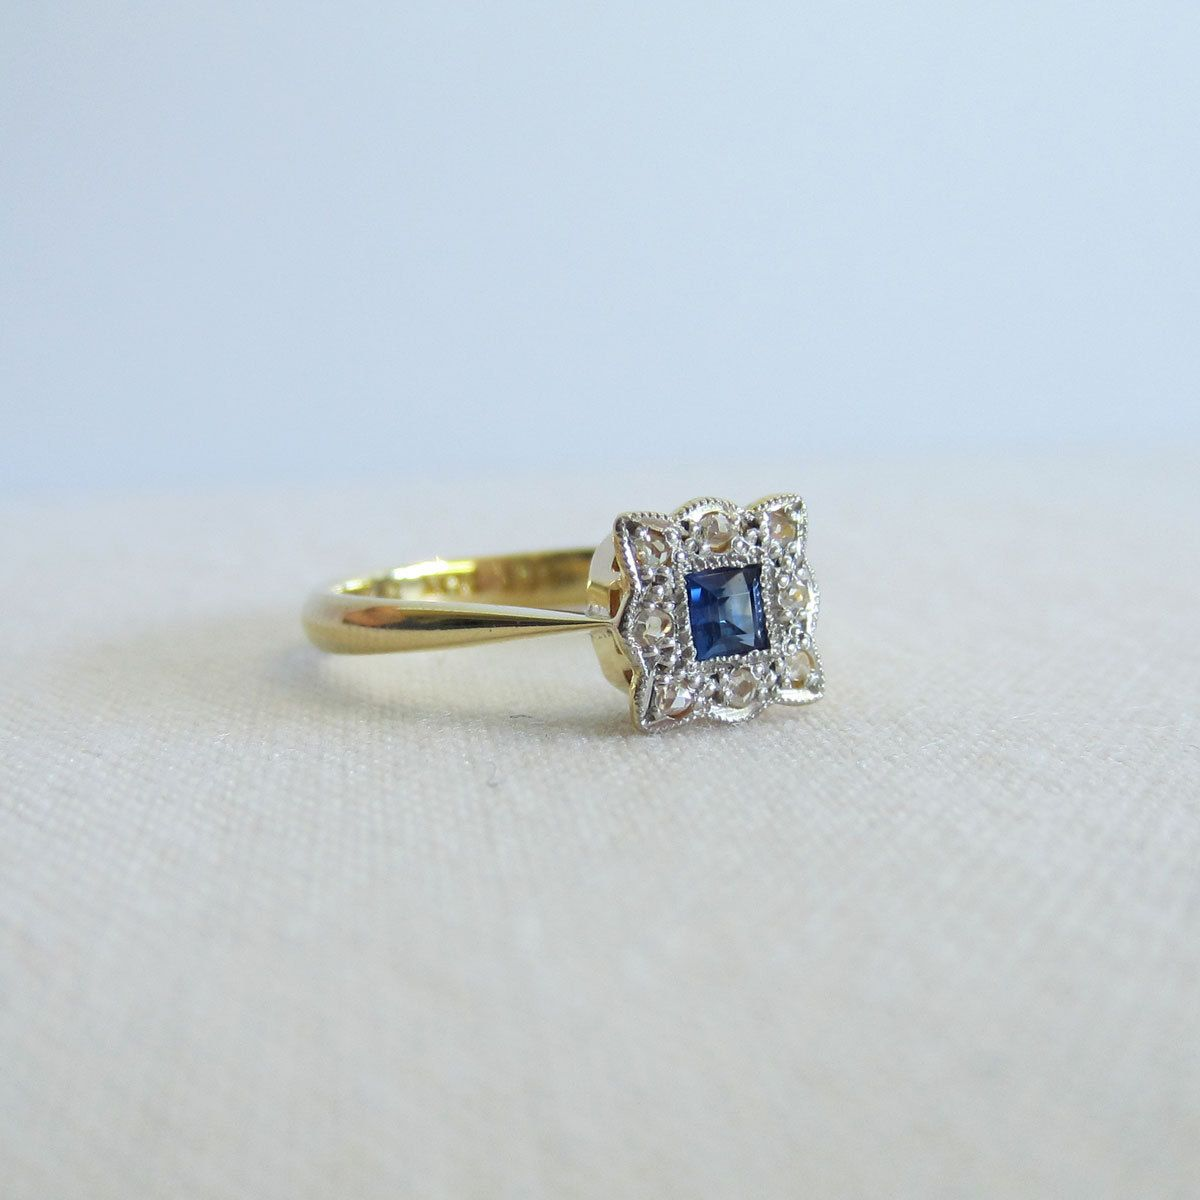 vintage engagement ring. sapphire with diamond halo, circa 1920s